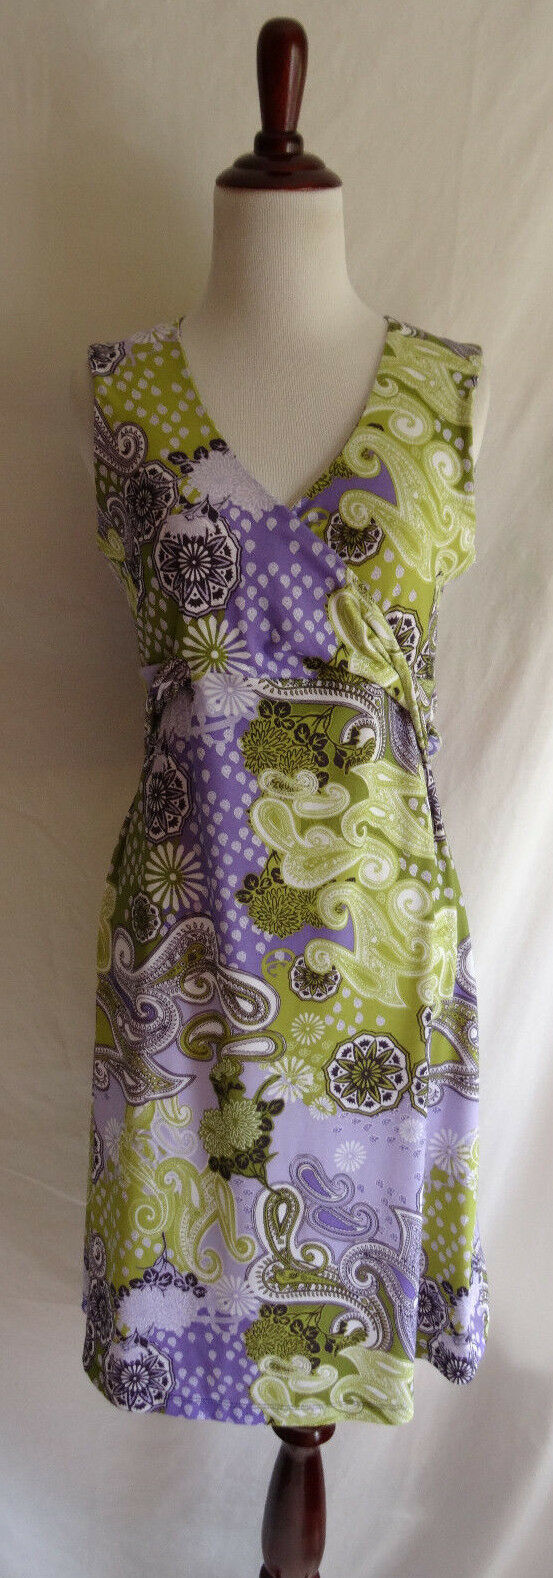 Prana M Green Purple Mixed Paisley Daisy Print Dazzle Jersey Knit Stretch Dress